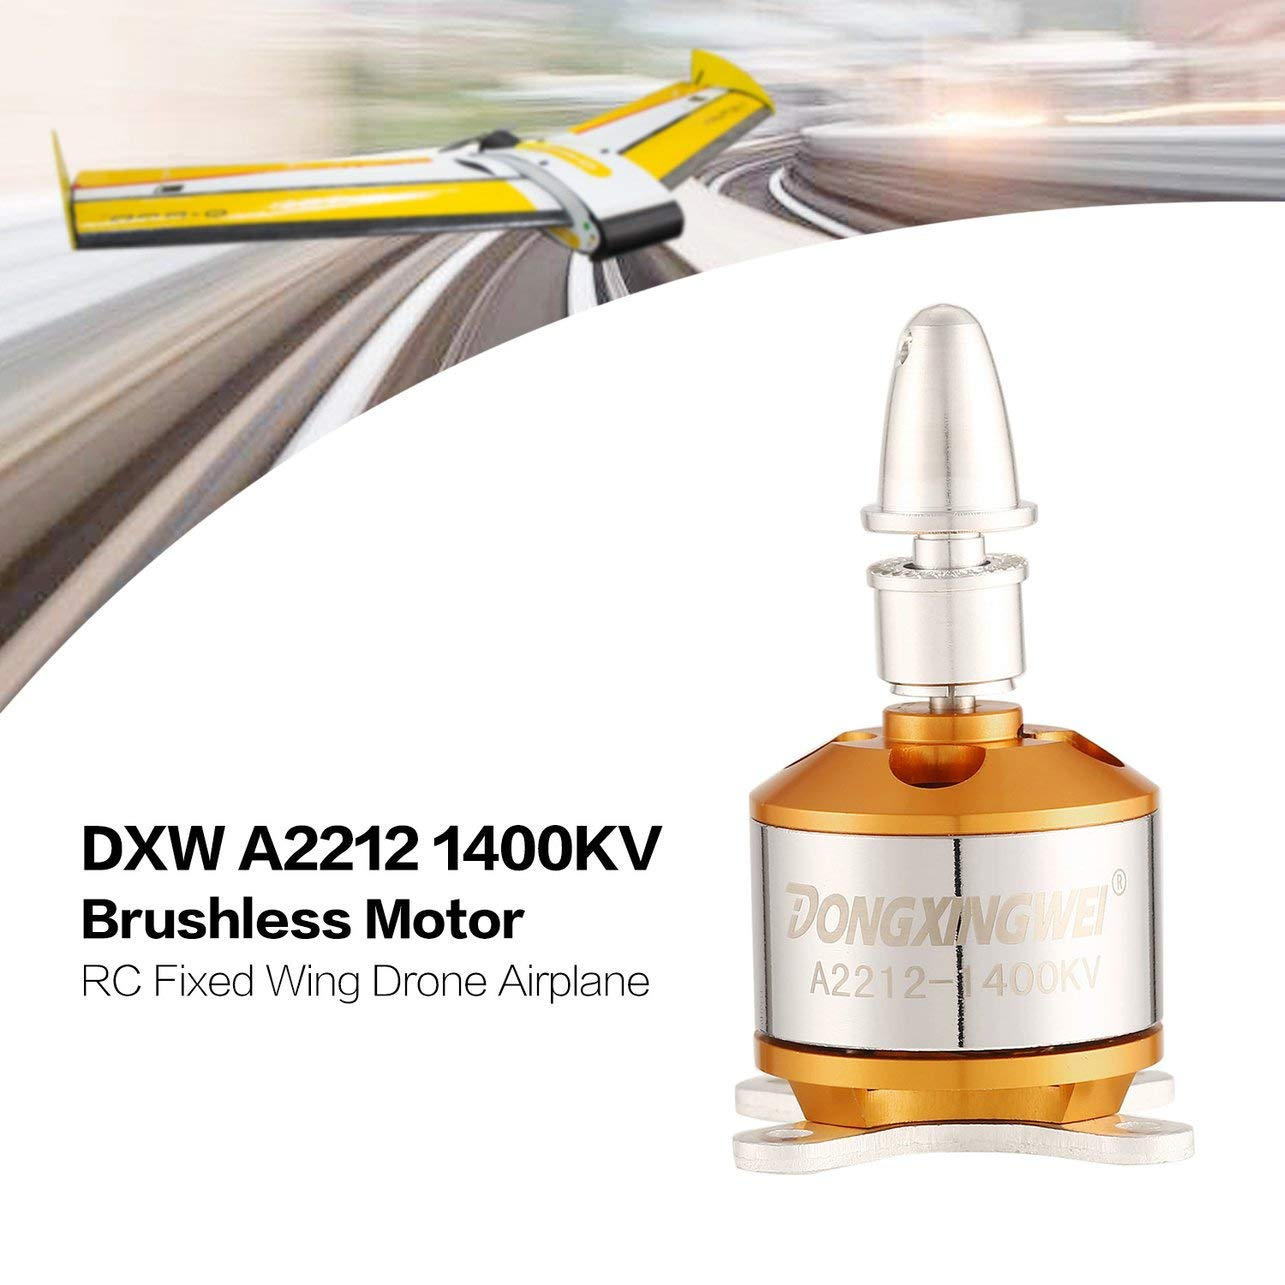 DXW A2212 1400KV 2-4S Outrunner Brushless Motor RC Fixed Wing Airplane, Gold WOSOSYEYO